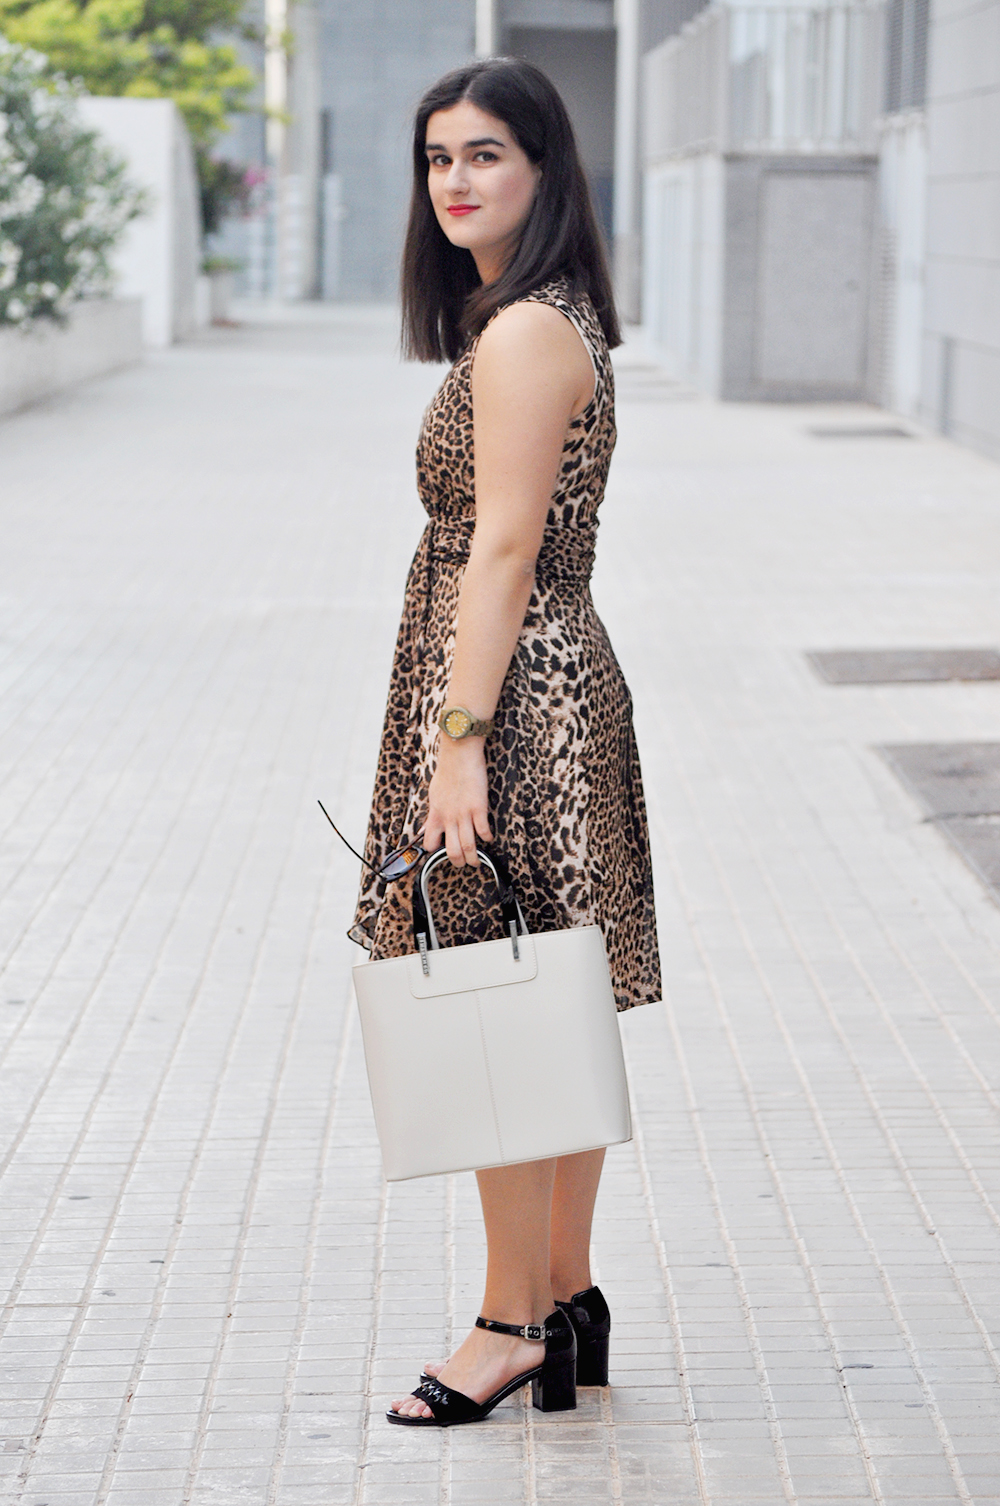 valencia fashion blogger moda, something fashion leopard dress, JORDwatch wooden watch sunglasses streetstyle outfit, stonefly lamarthe bag, how to wear leopard print dress